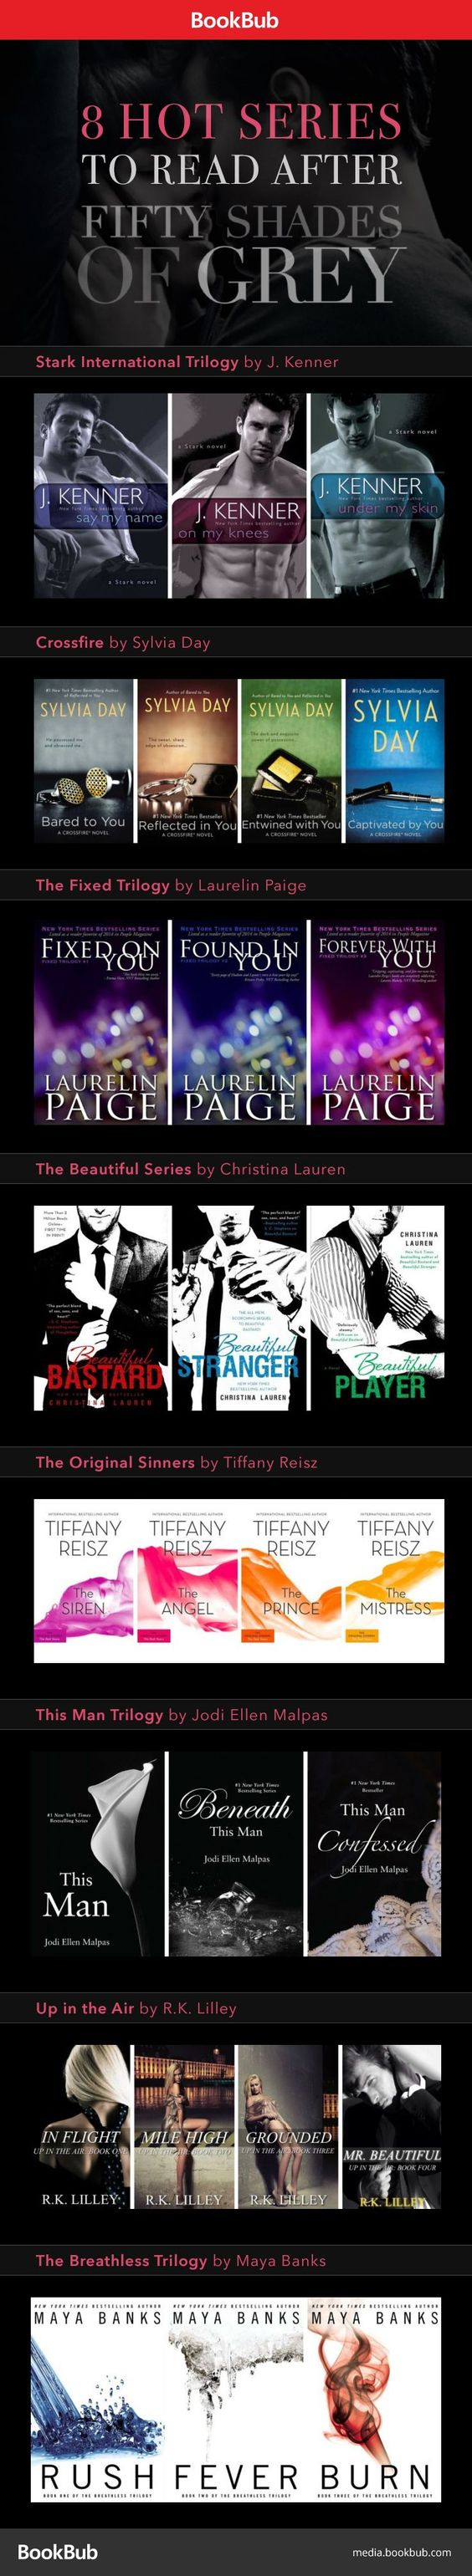 8 Series to Start After You Finish the Fifty Shades Trilogy - Hot books for Fifty Shades of Grey fans. These books are worth reading if you can't get enough Christian Grey!